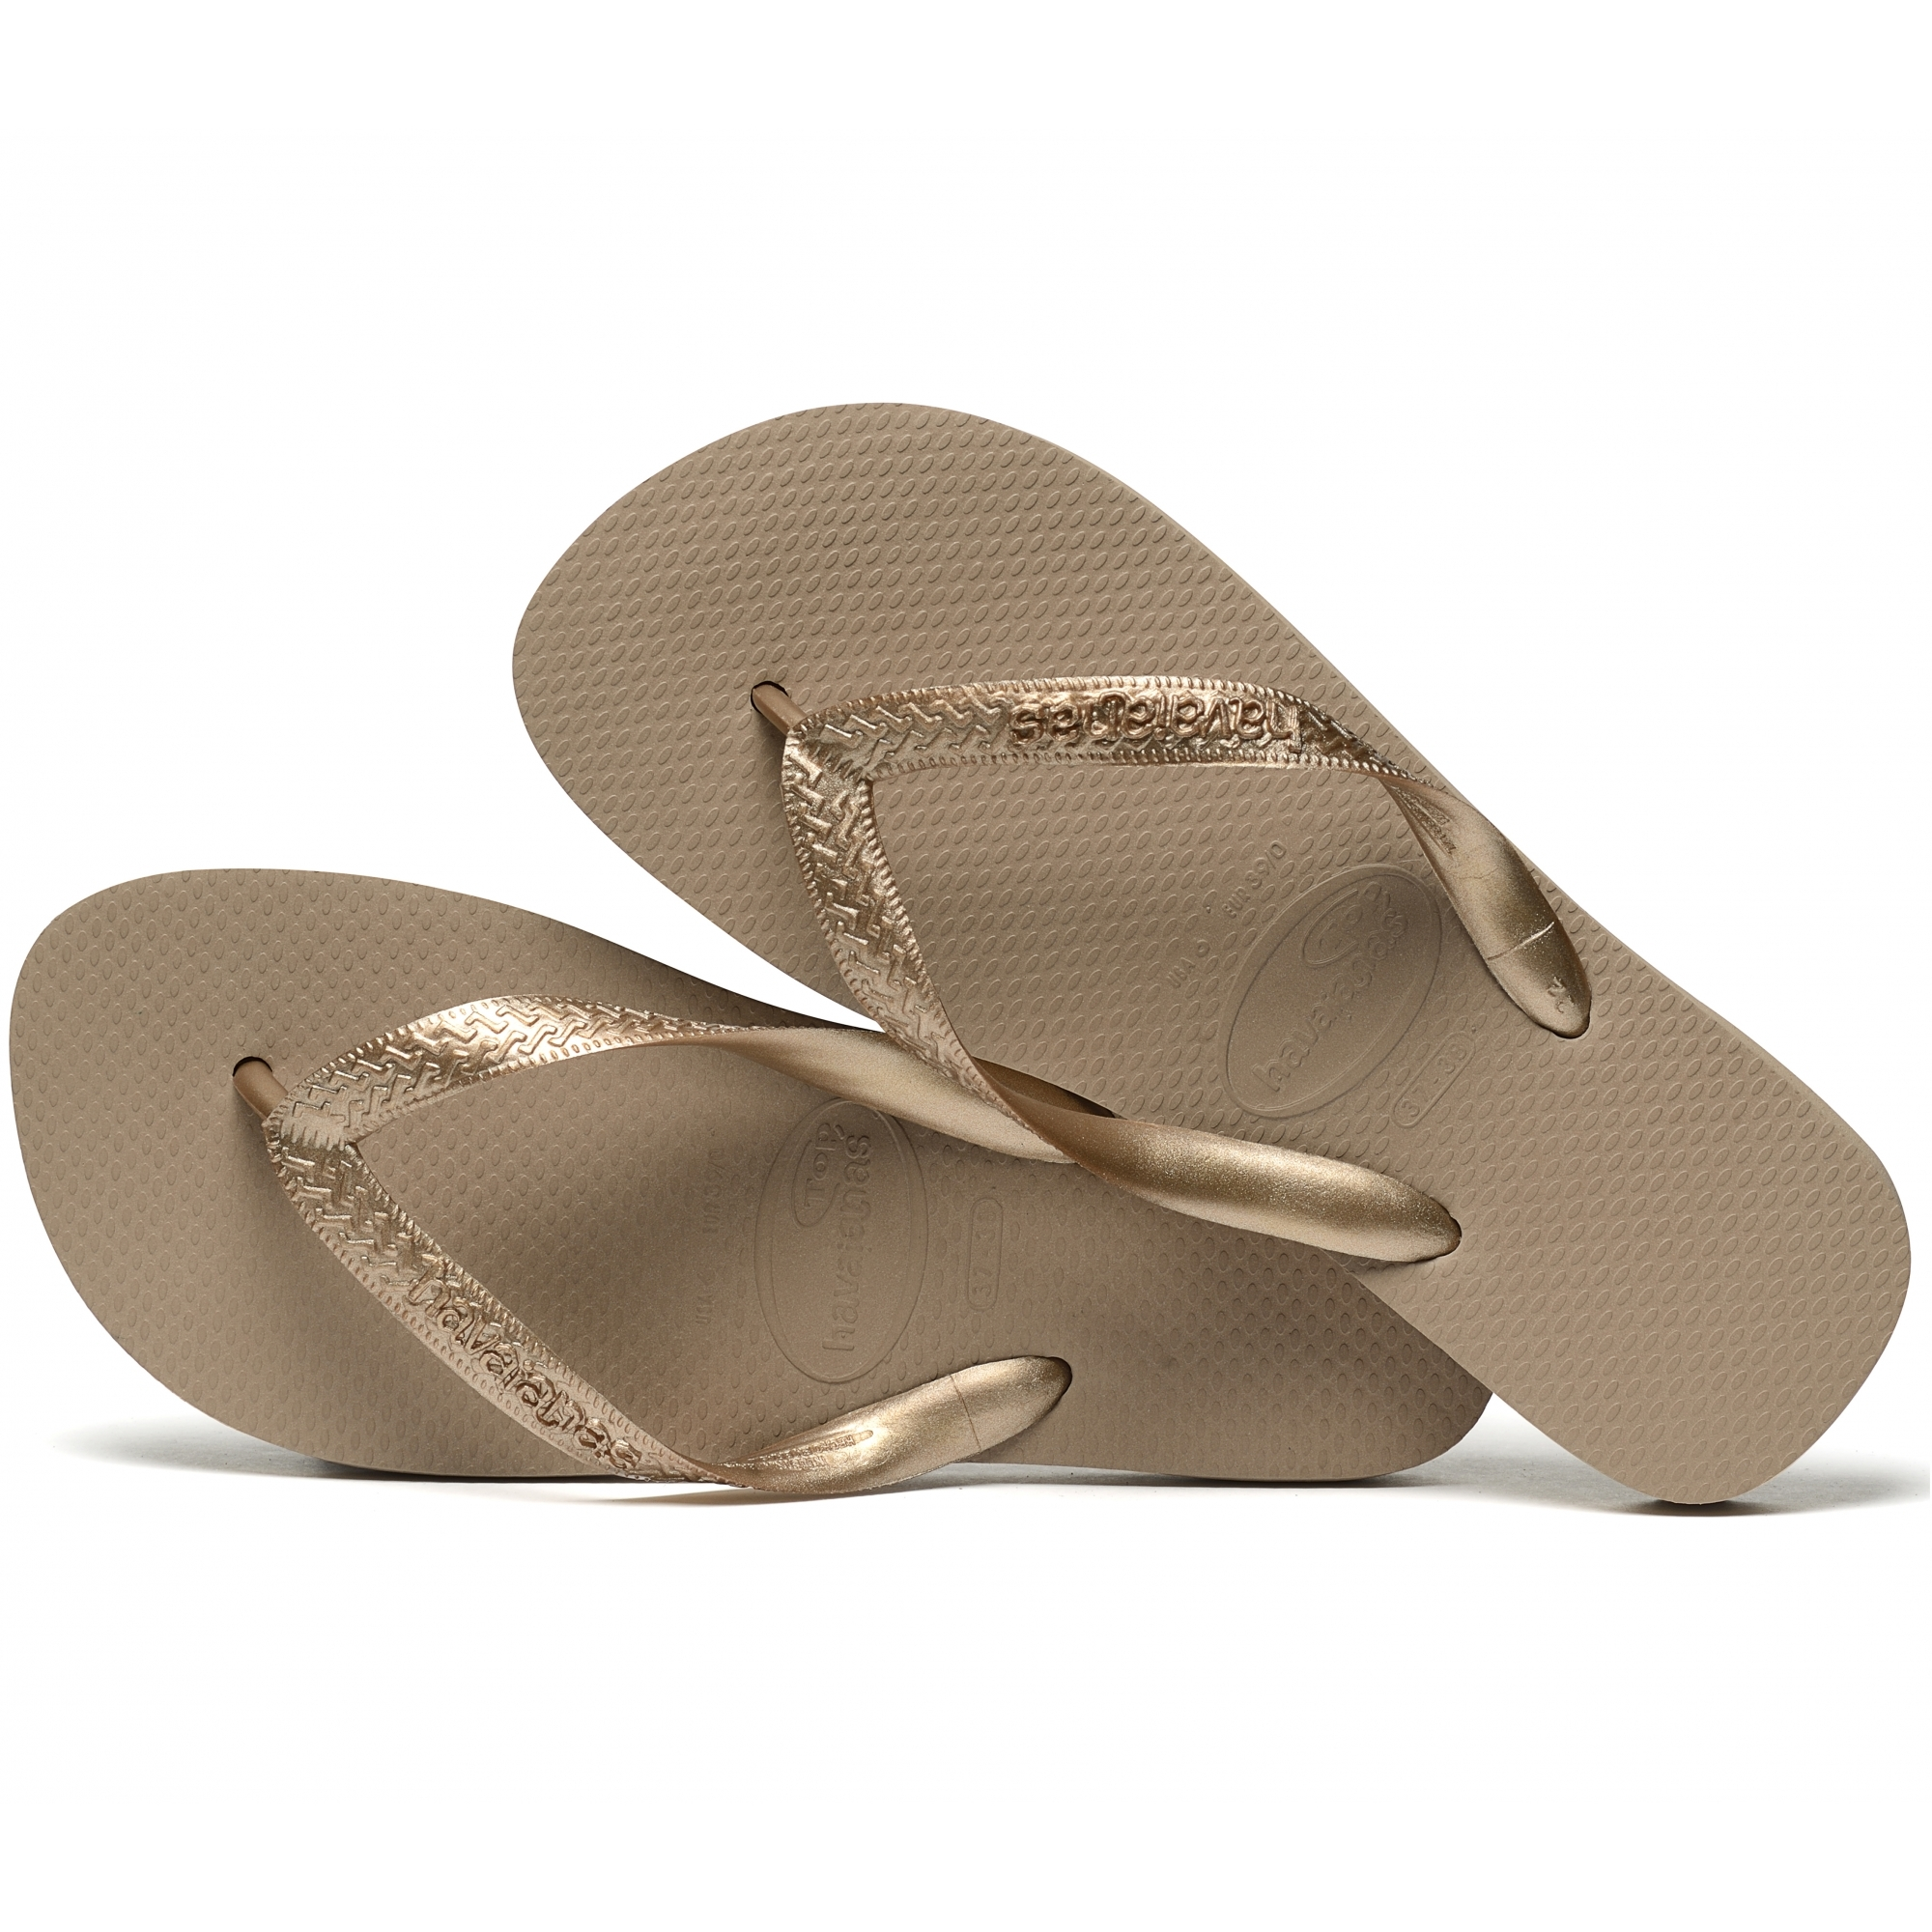 36c7dbe5456 Havaianas HAV TOP TIRAS Ladies Flip Flops ROSE GOLD